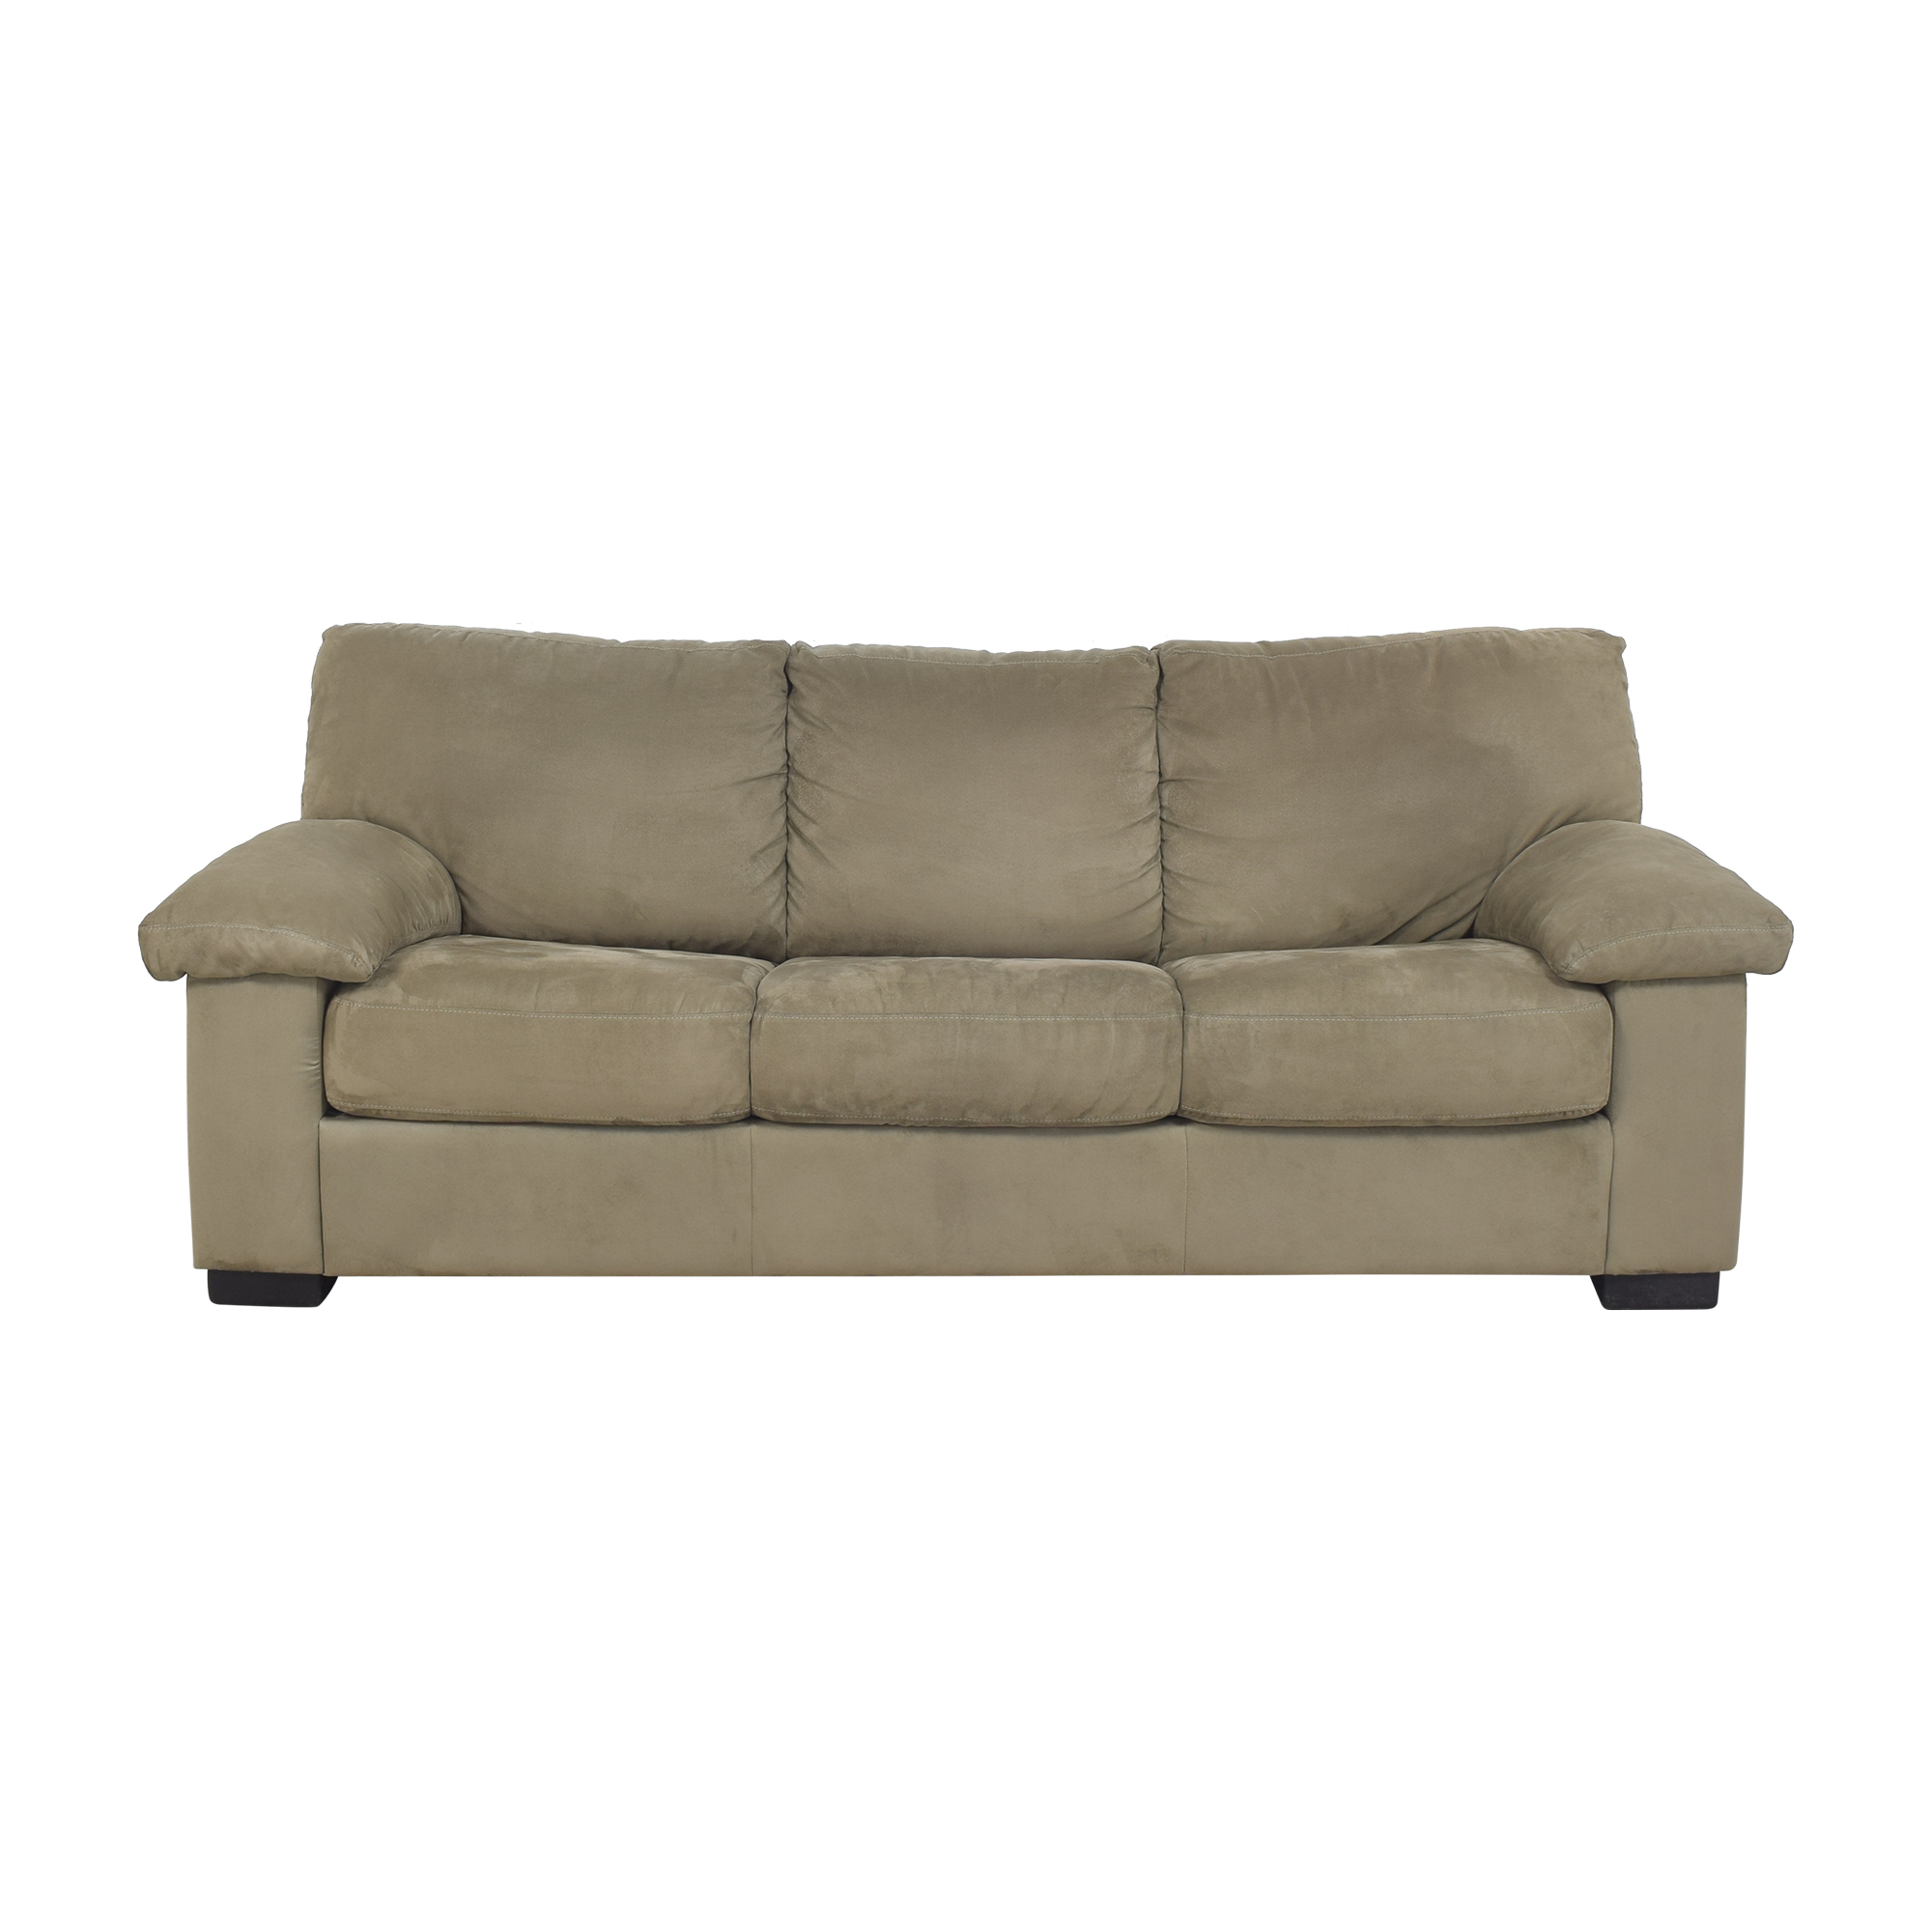 shop Italsofa Sleeper Sofa Italsofa Sofa Beds